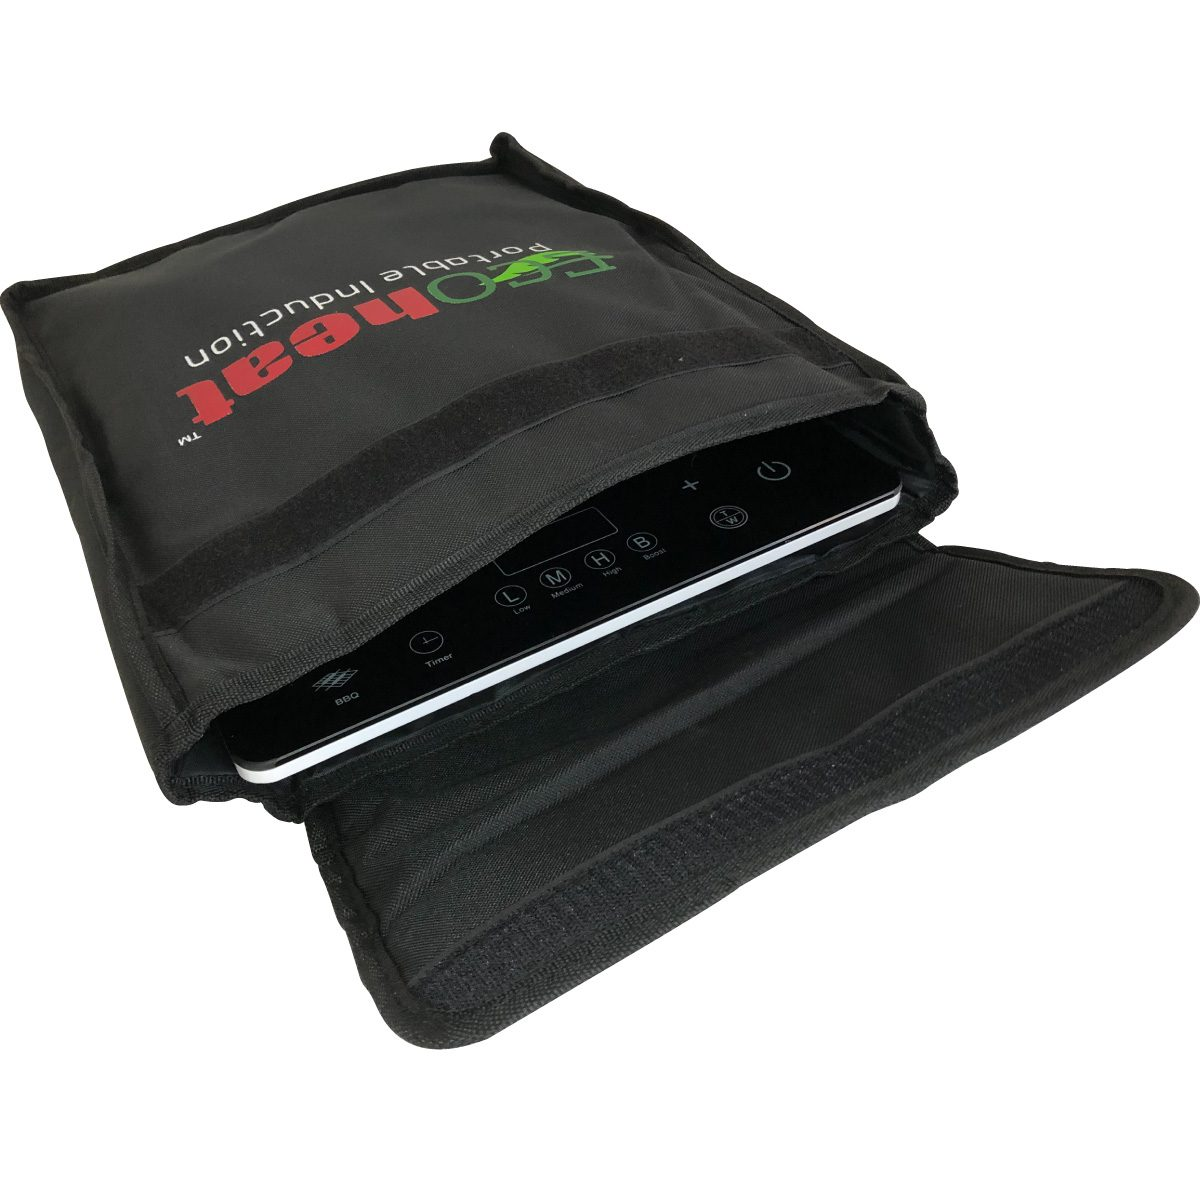 Ecoheat Induction cooktop carry travel bag with Ecoheat Smarttouch